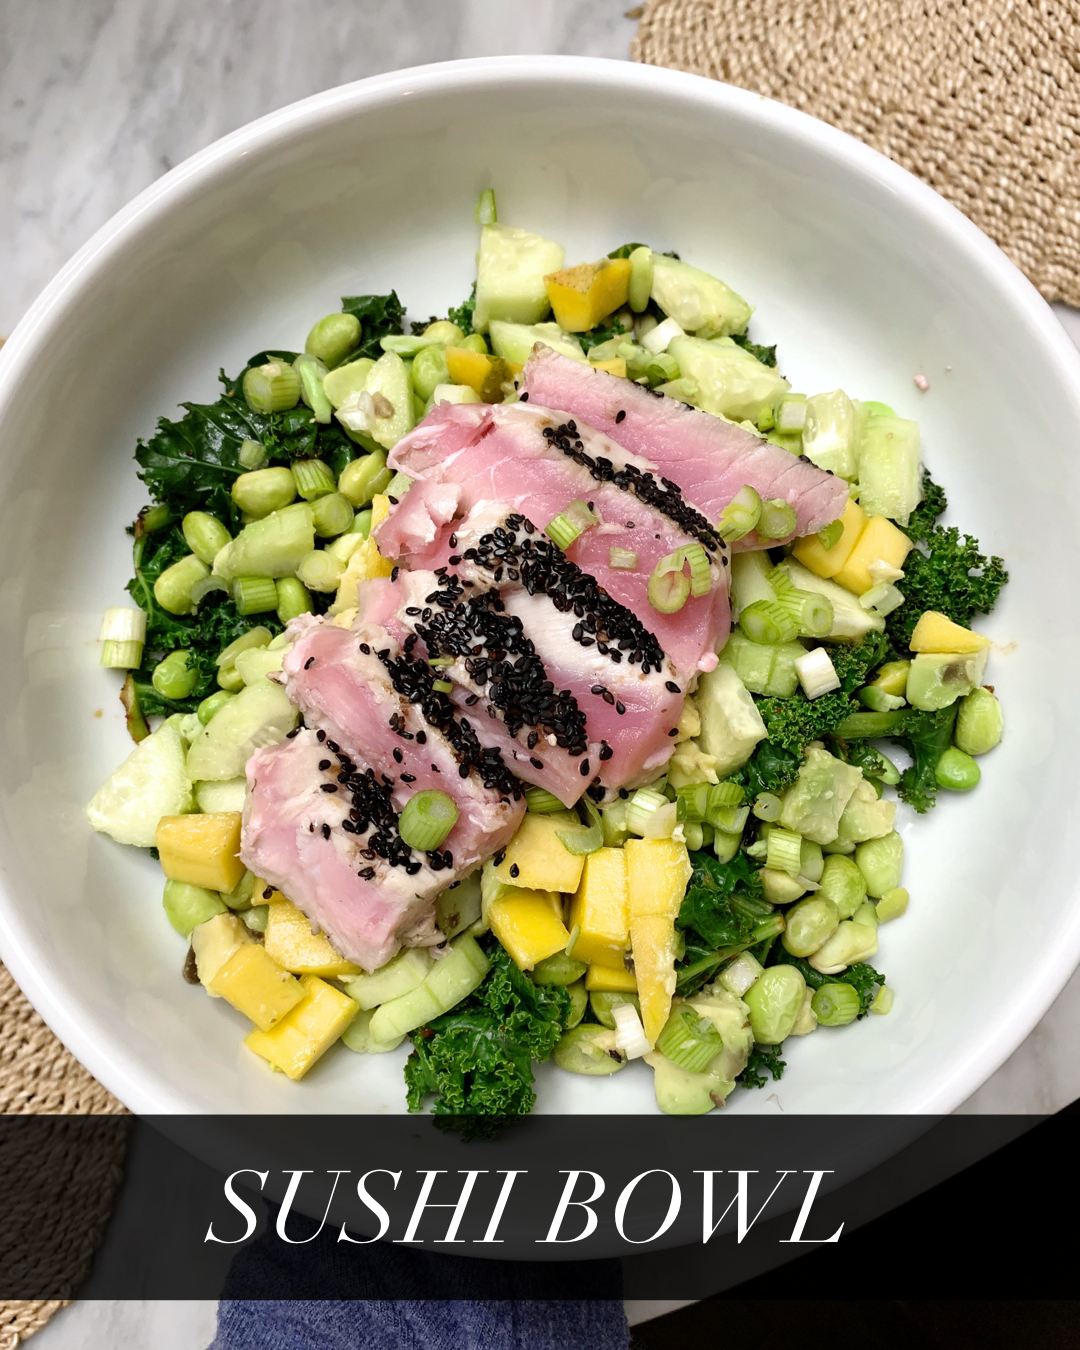 Sushi Bowl | from Get Fit Done Workout and Lifestyle Guide